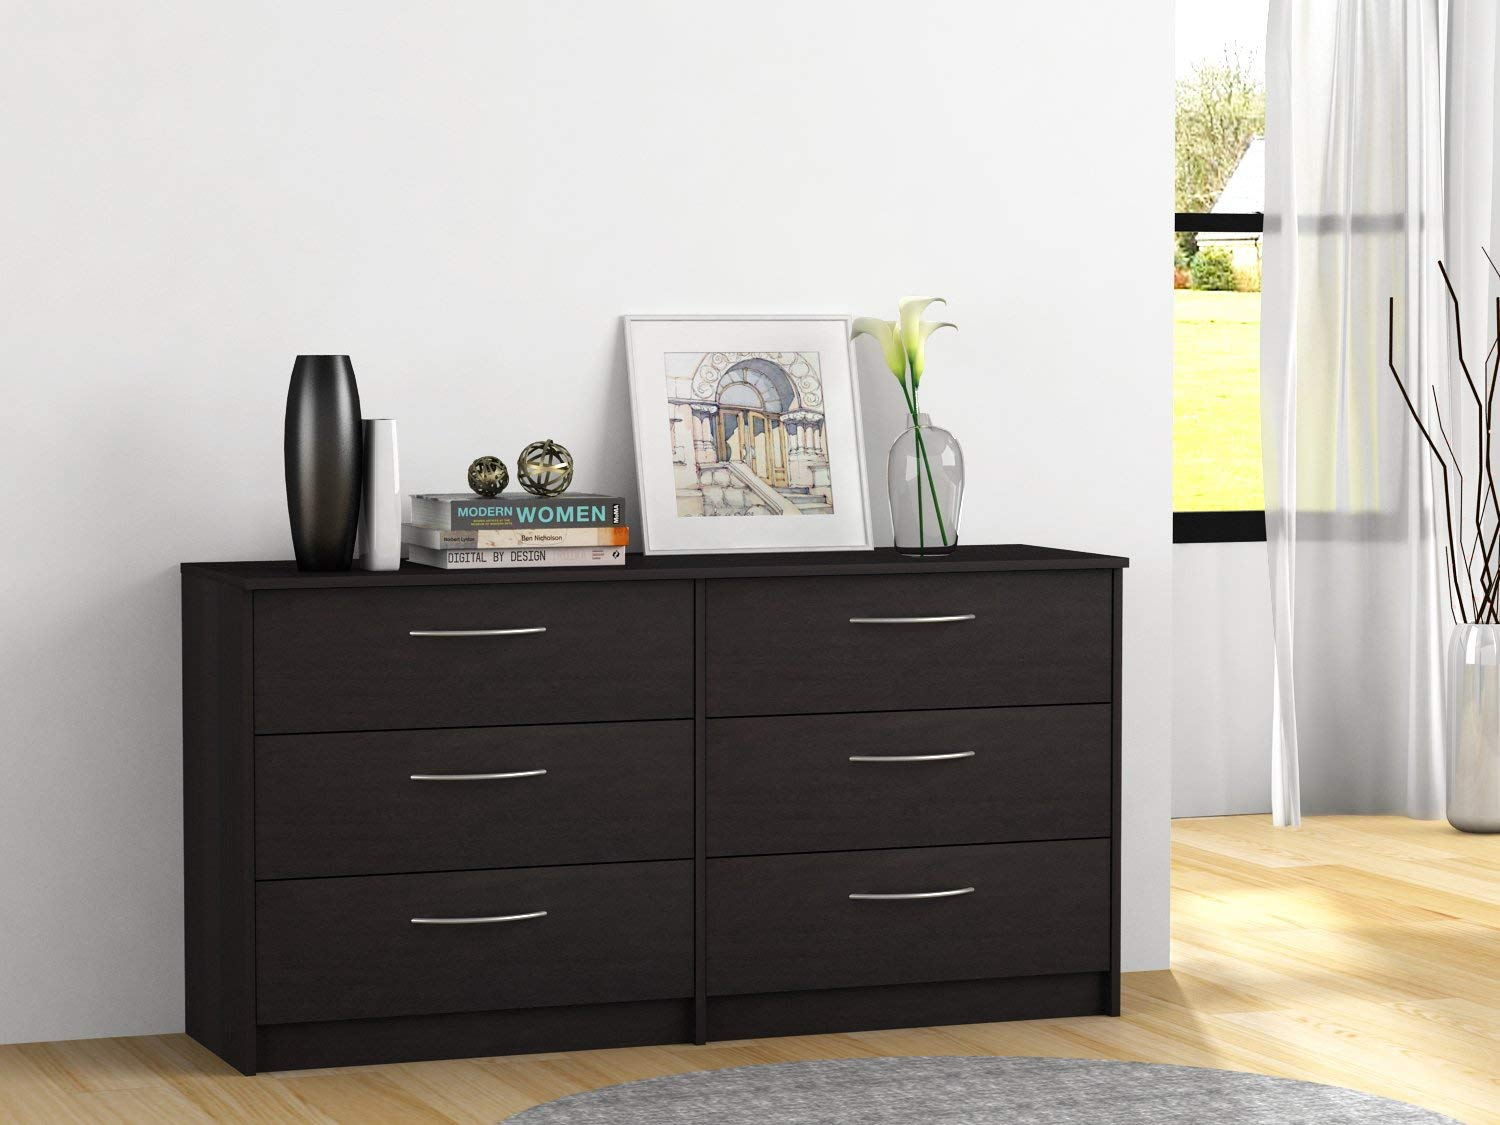 Elegant 6-Drawer Dresser with Metal Ball Bearing Slides, Sturdy and Long Lasting Engineered Wood, Metal Handles with Brushed Nickel Finish, Available in Espresso, Bank Alder and Walnut Laminate